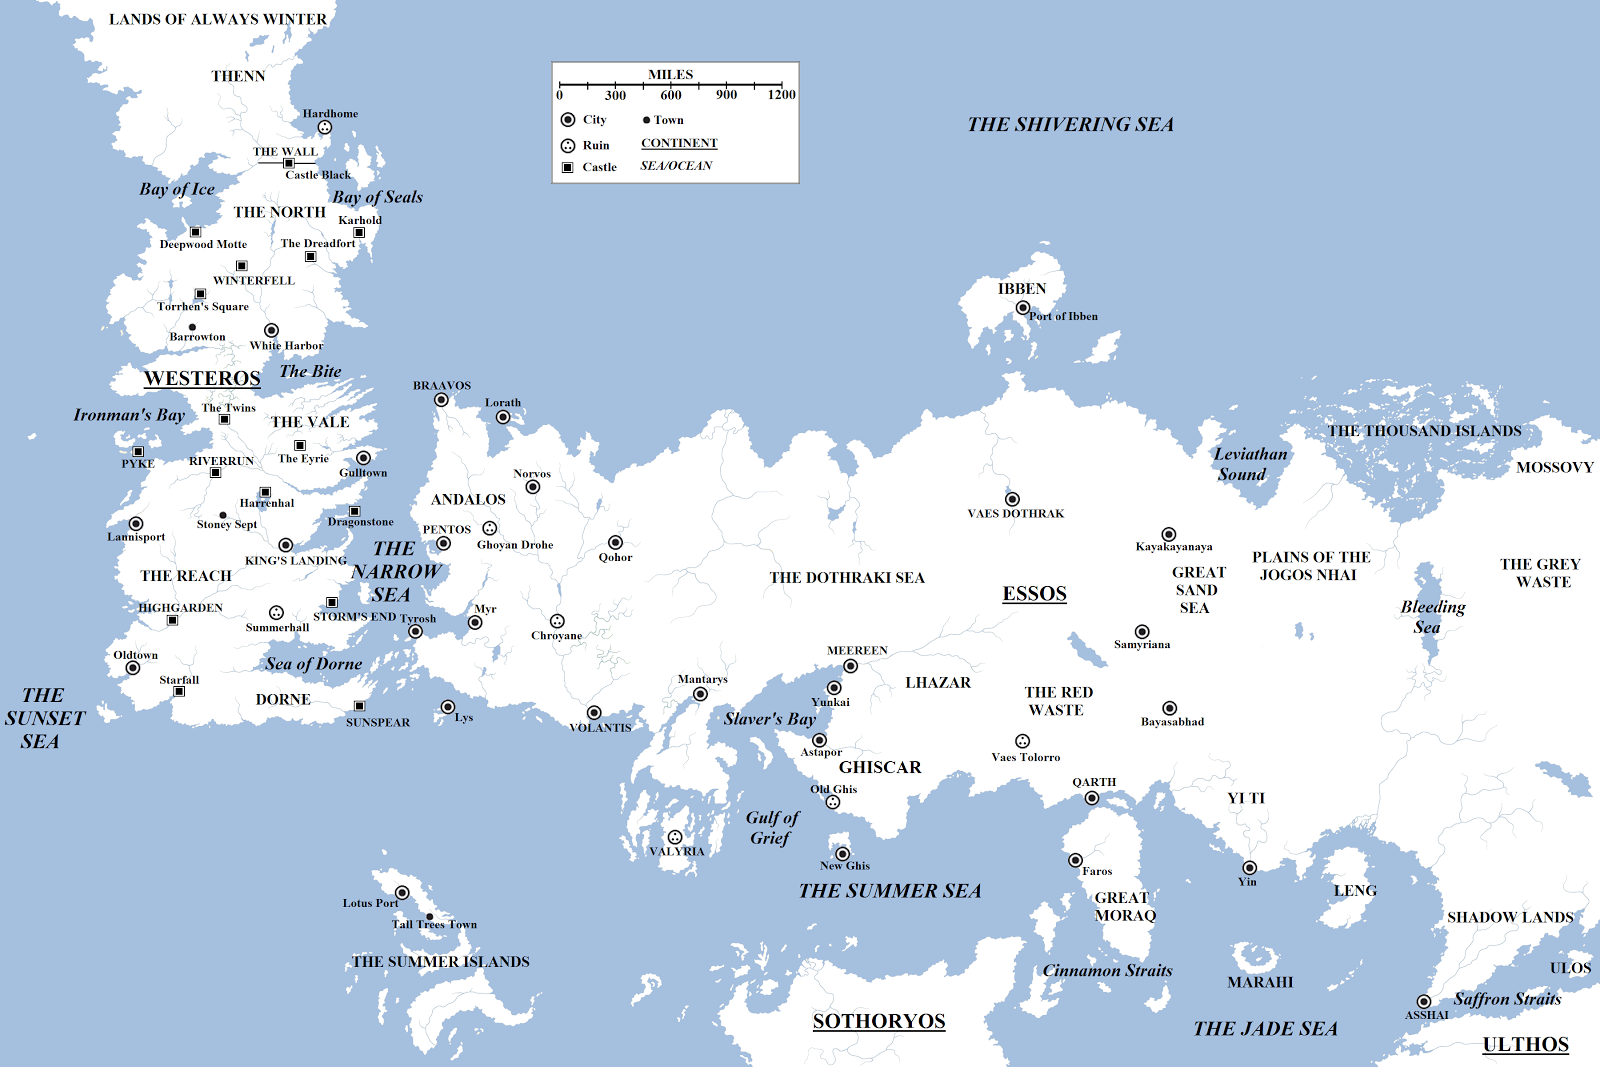 Game of thrones detailed map bing images game of thrones game of thrones detailed map bing images publicscrutiny Images